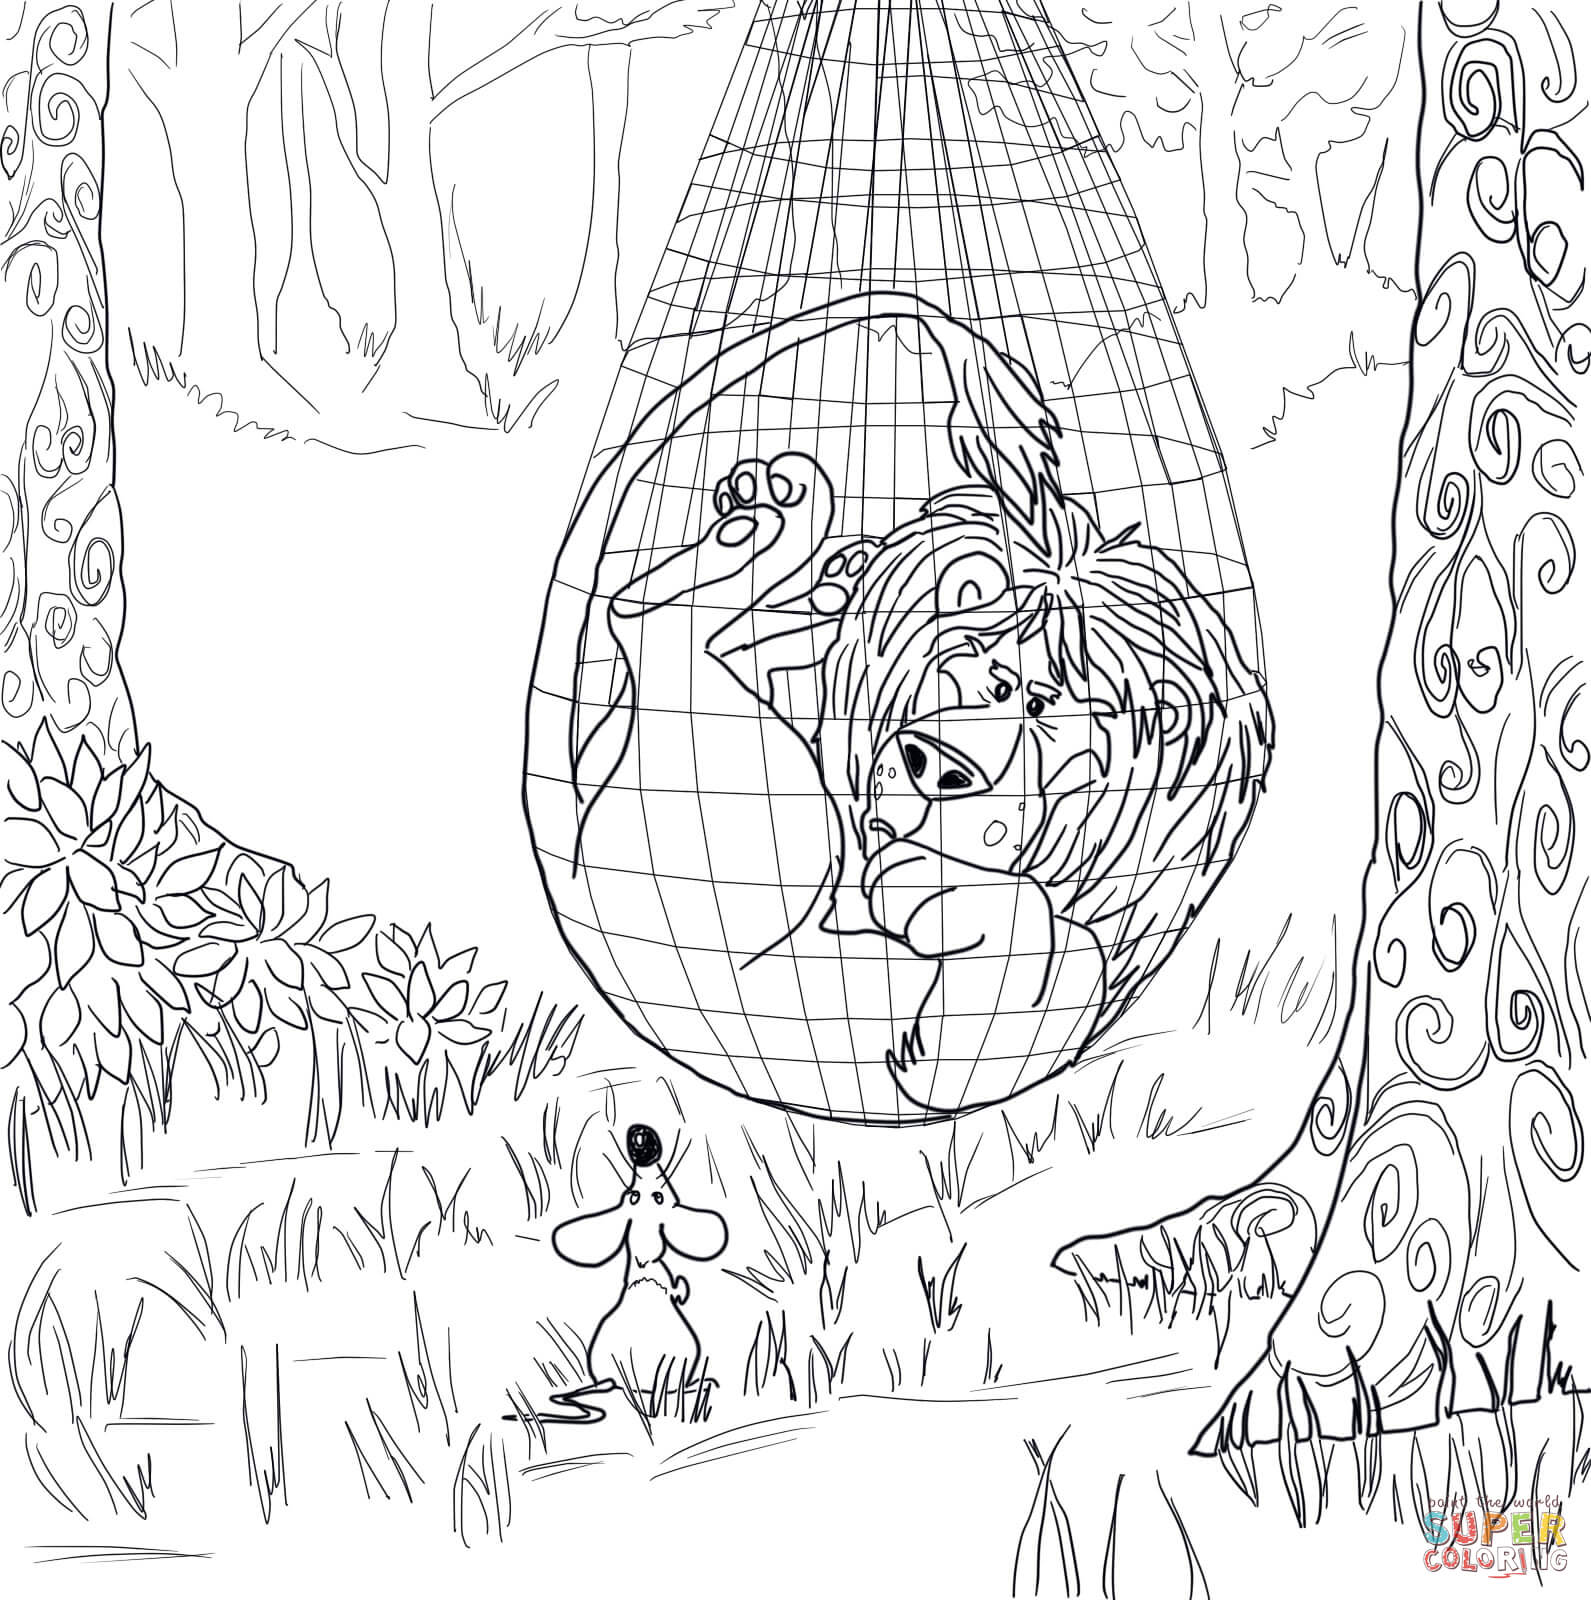 1591x1600 The Lion Trapped In The Net Coloring Page Free Printable